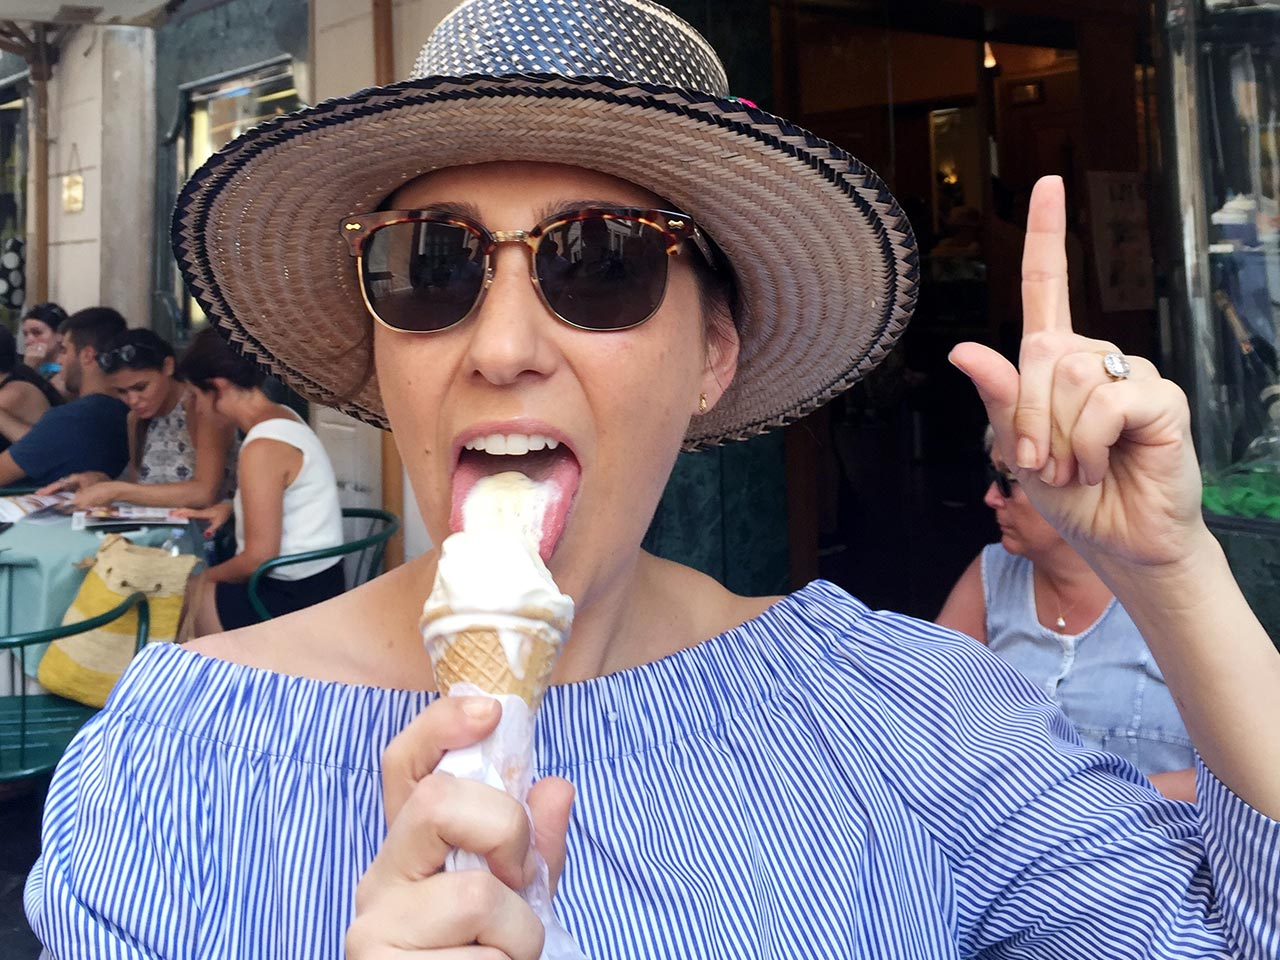 The Blake Family take on Italy's gelato one cone and cup at a time